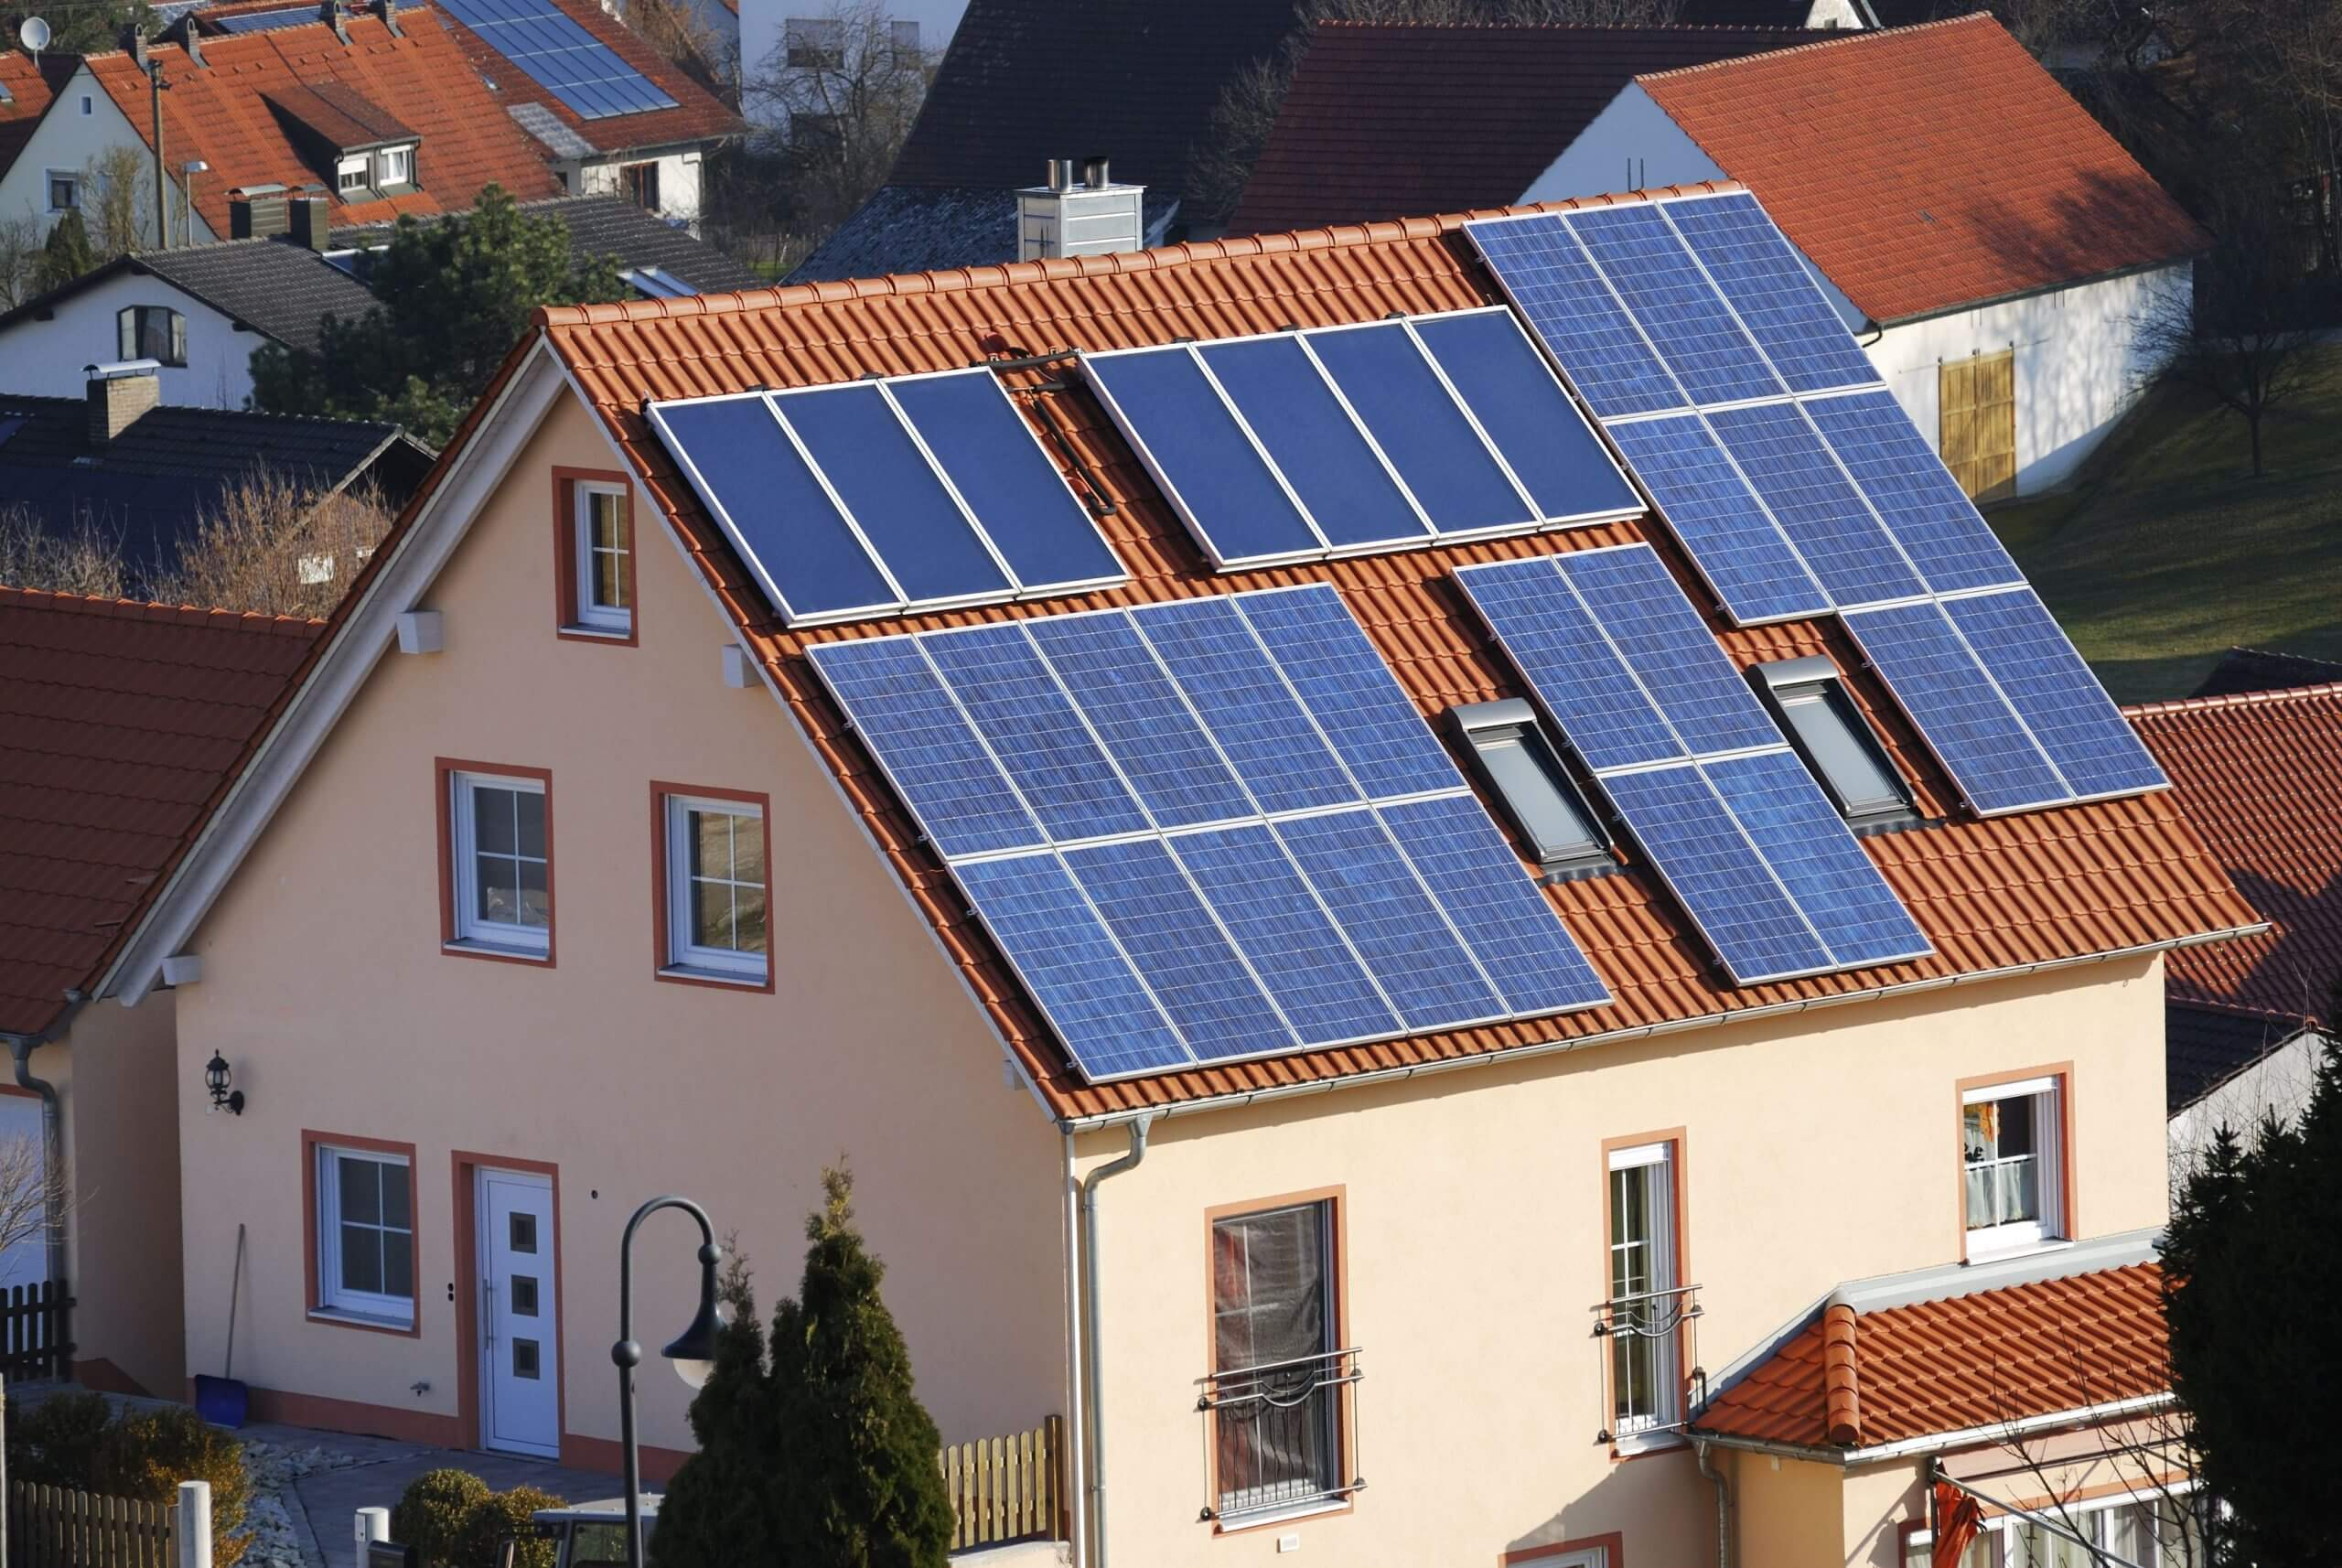 A Complete Guide for Homeowners to Install Solar Panel